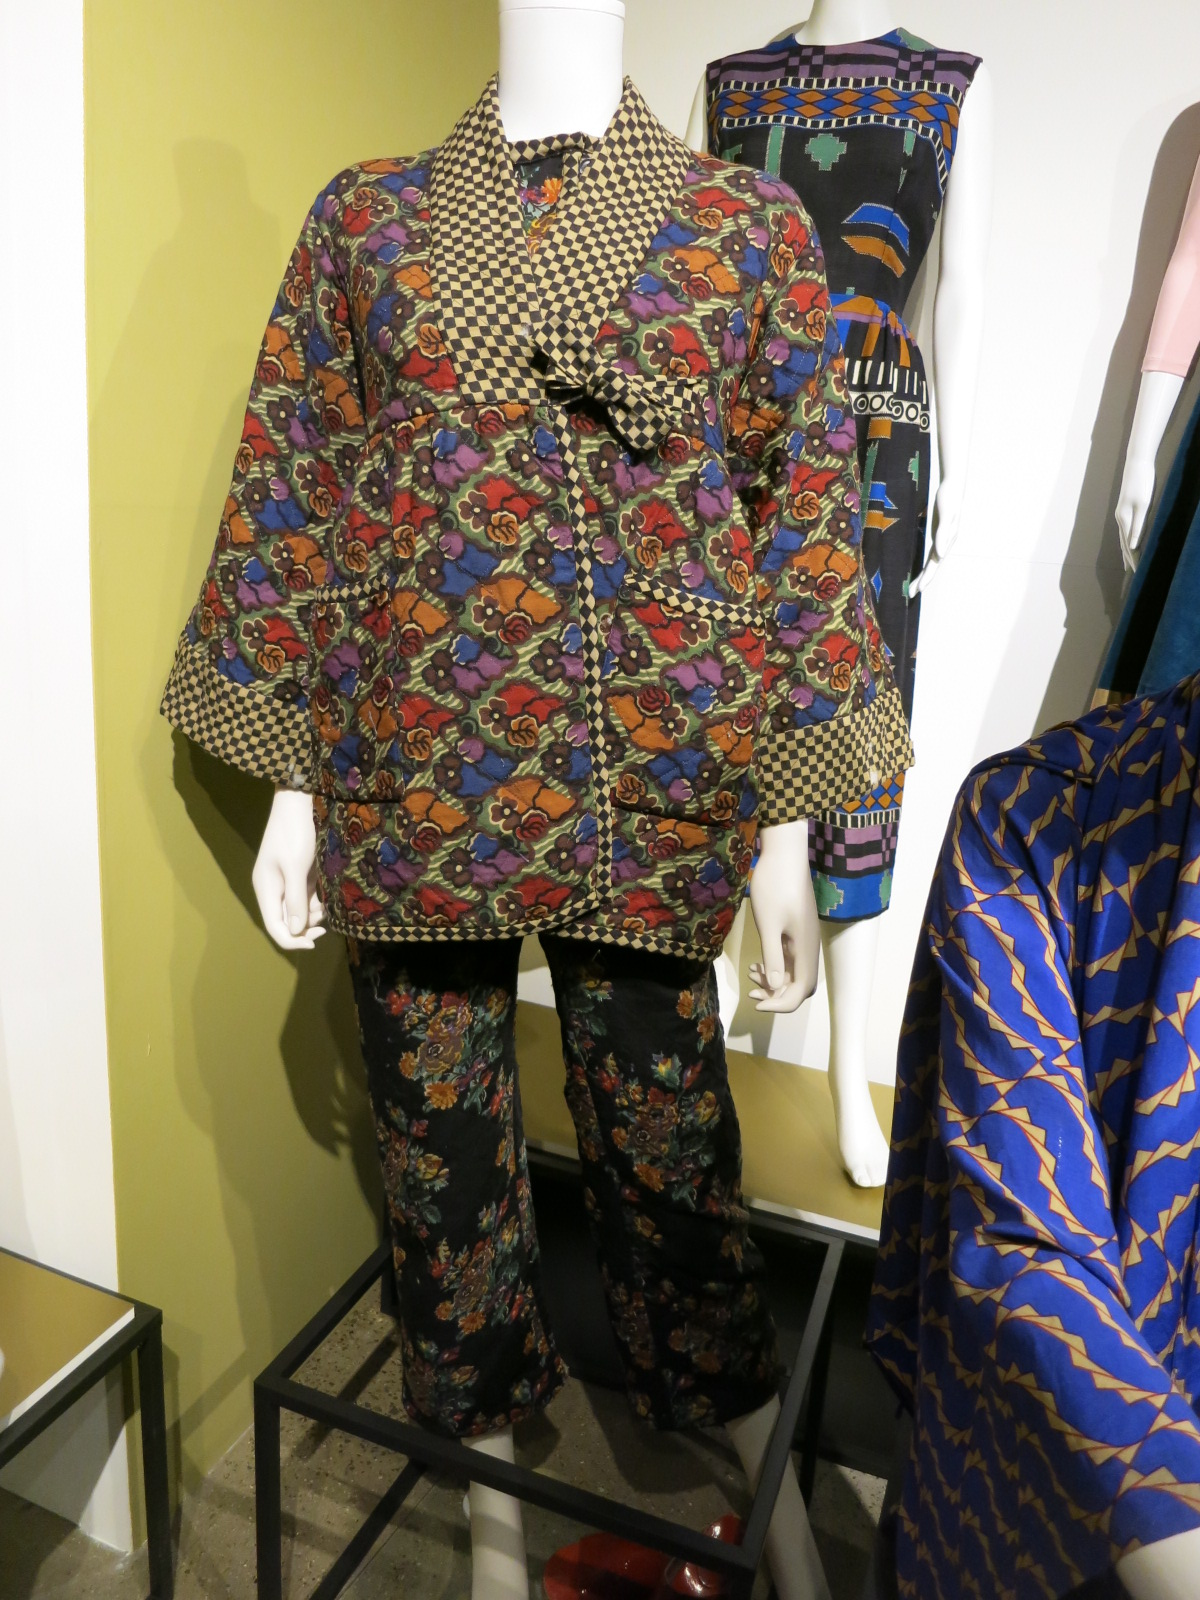 Liberty in Fashion exhibition at the Fashion & Textile Museum, Bermondsey, London 2015. This ensemble was in Foale & Tuffins A/W 1972 Collection. The prints are Richard Nevill's.